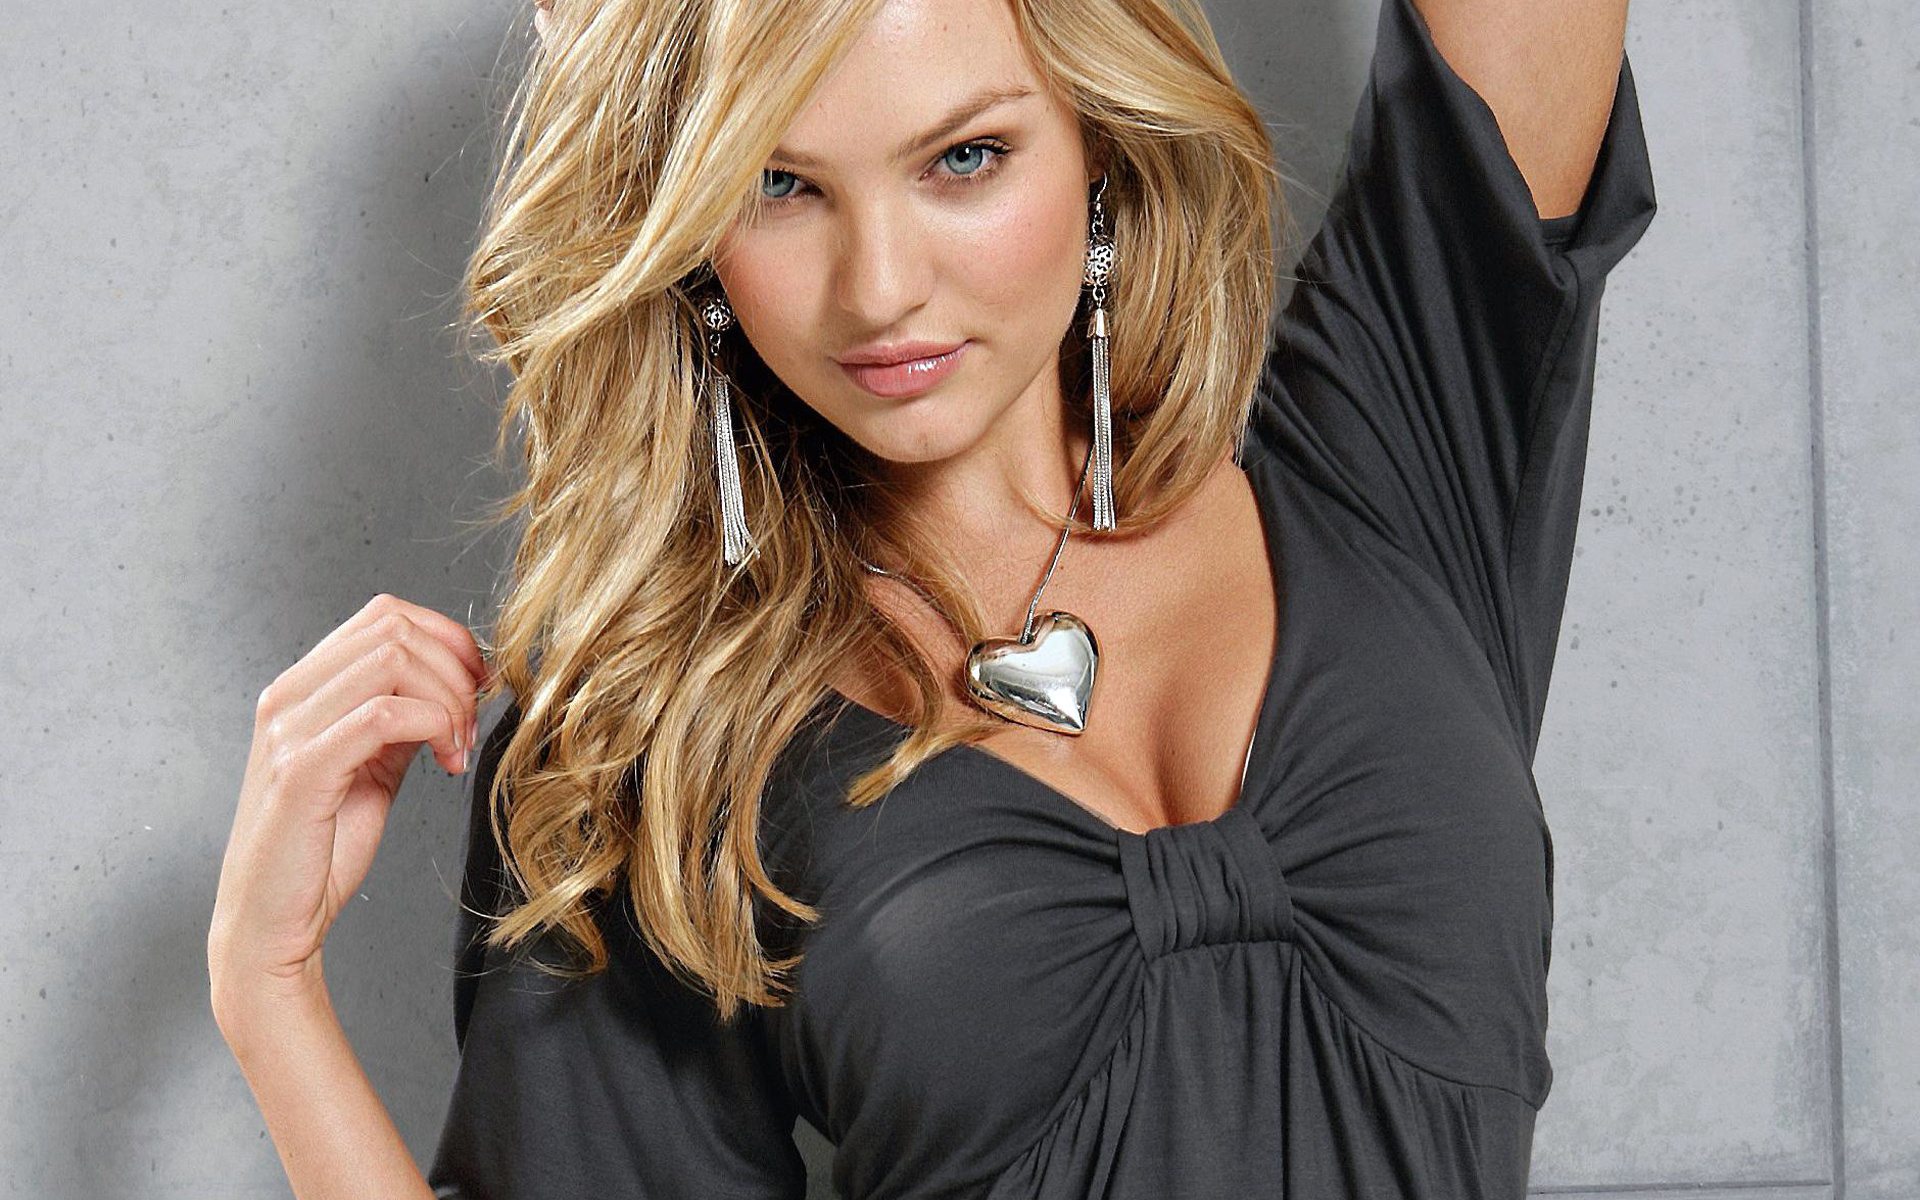 Candice Swanepoel, High, Tumblr, Images, Media   436643 Wallpaper